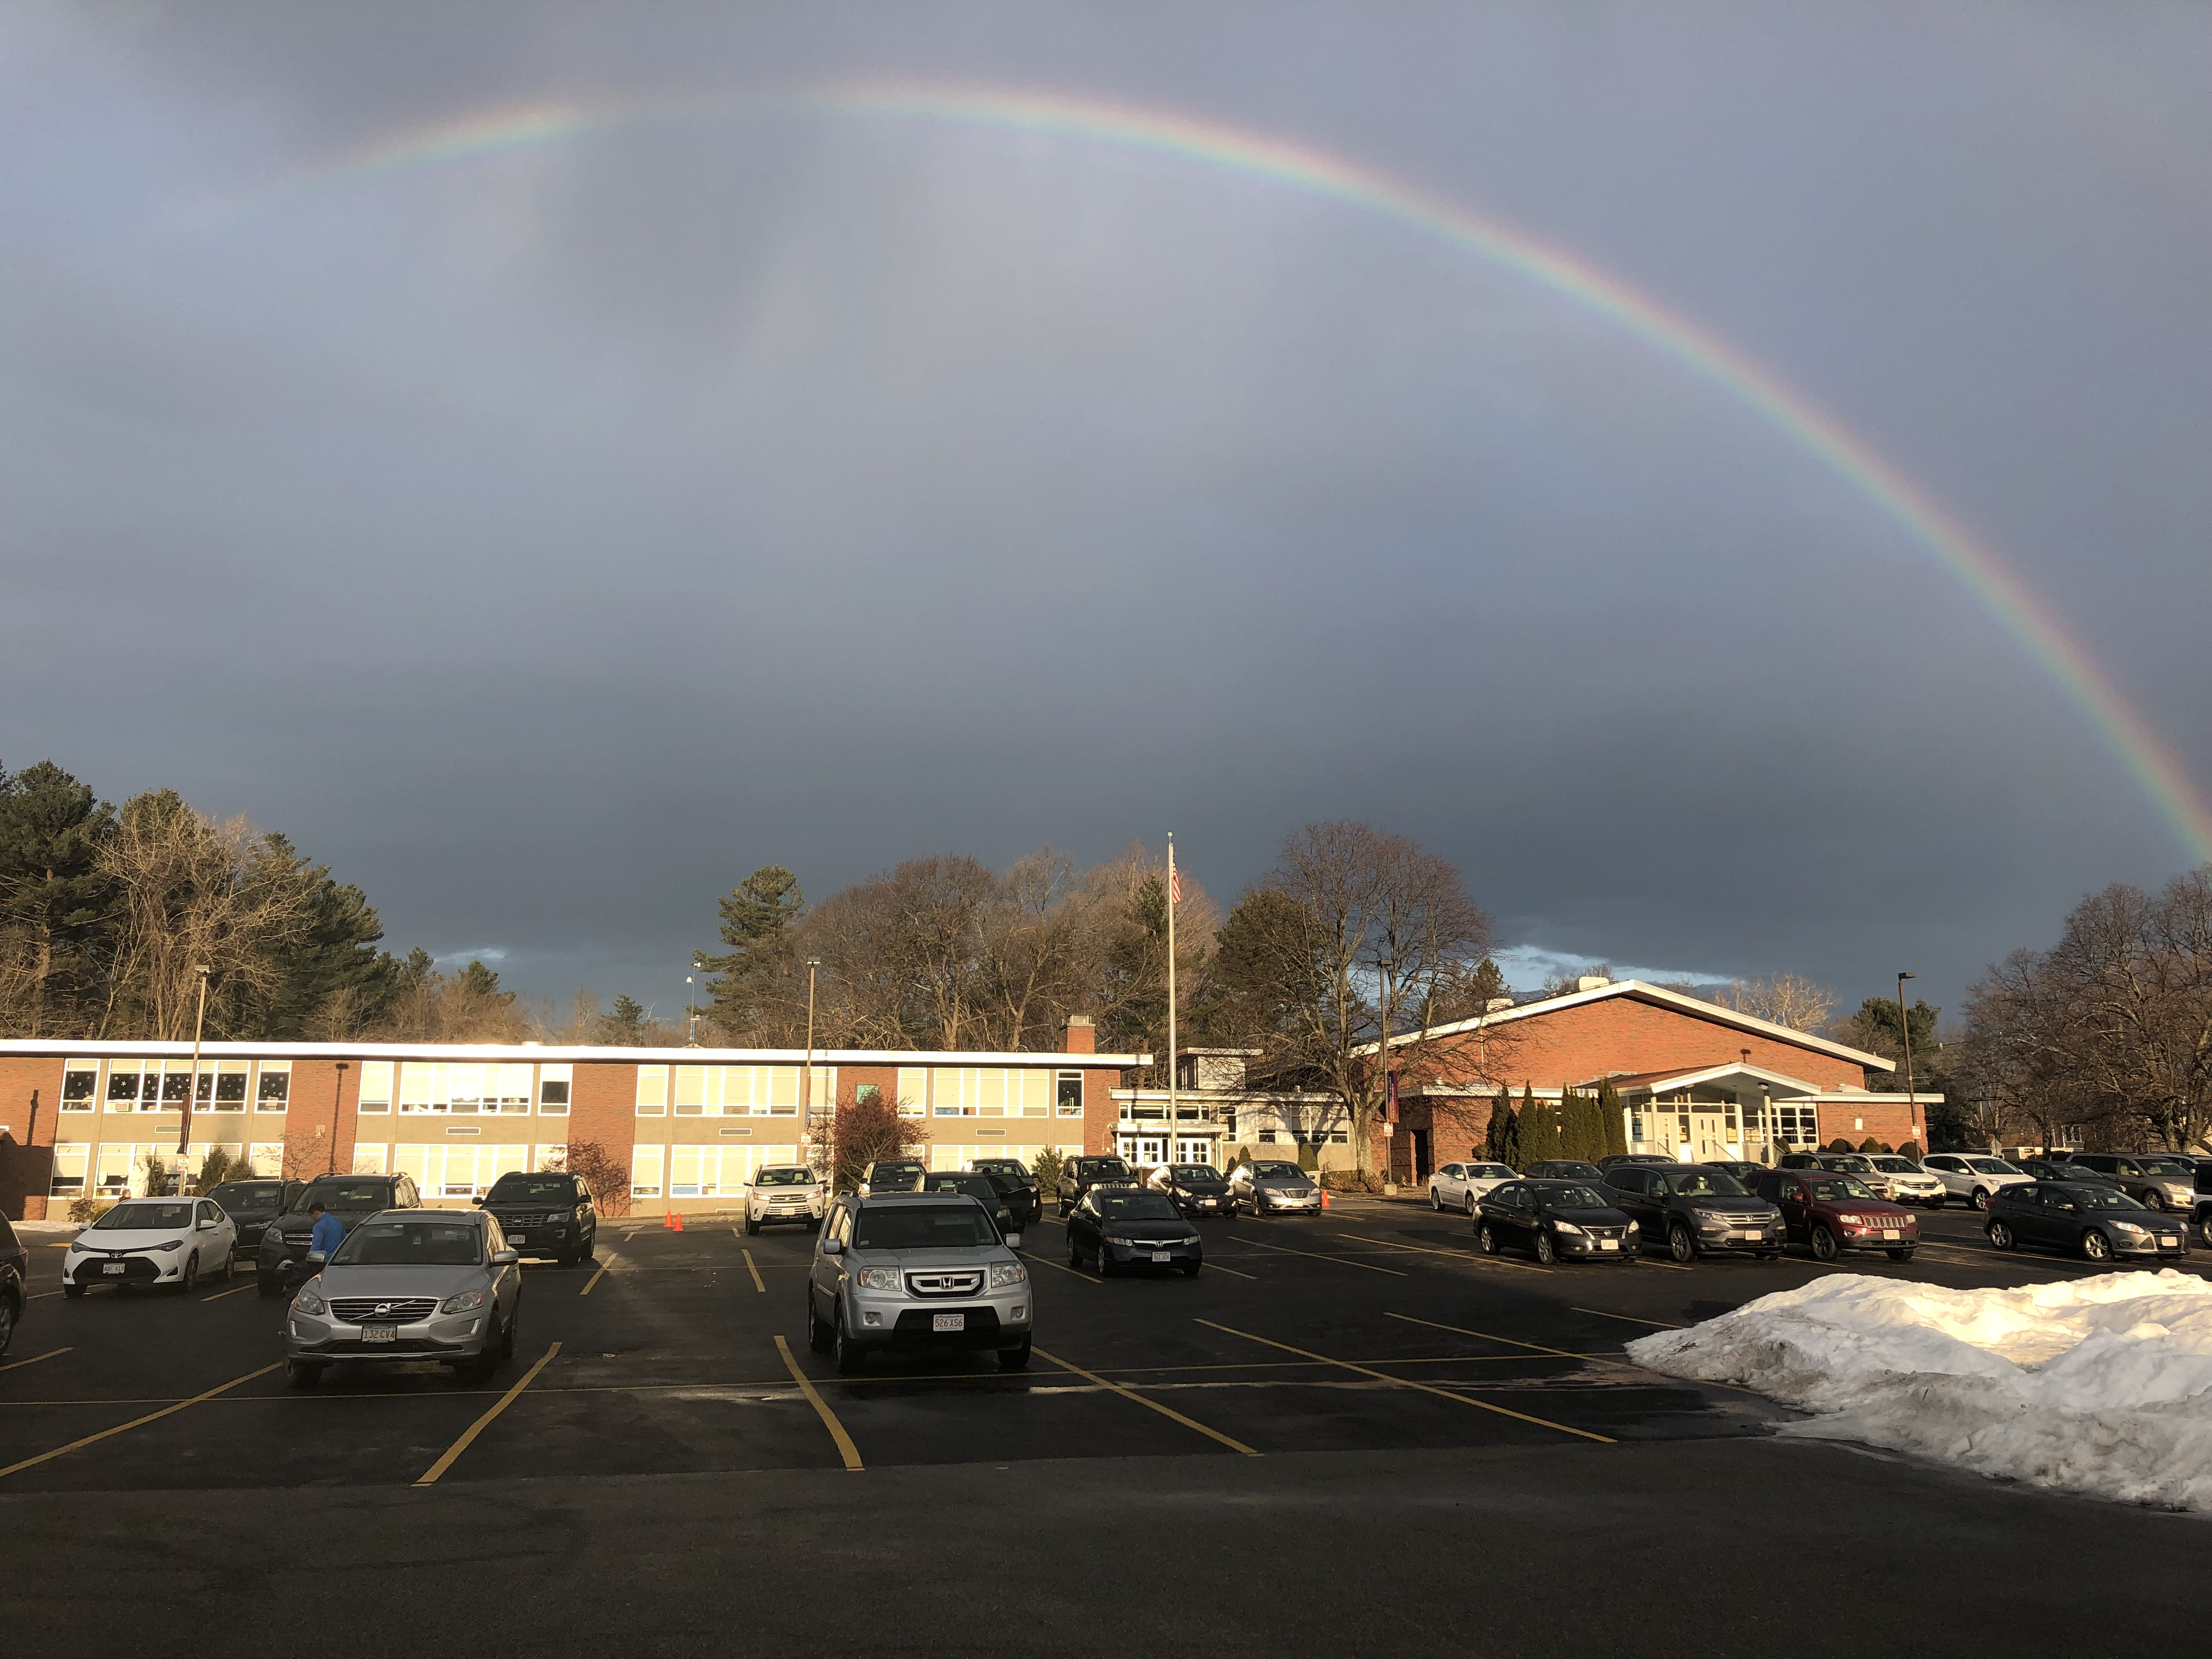 Feb 4, 2019 - Start of school with a Rainbow